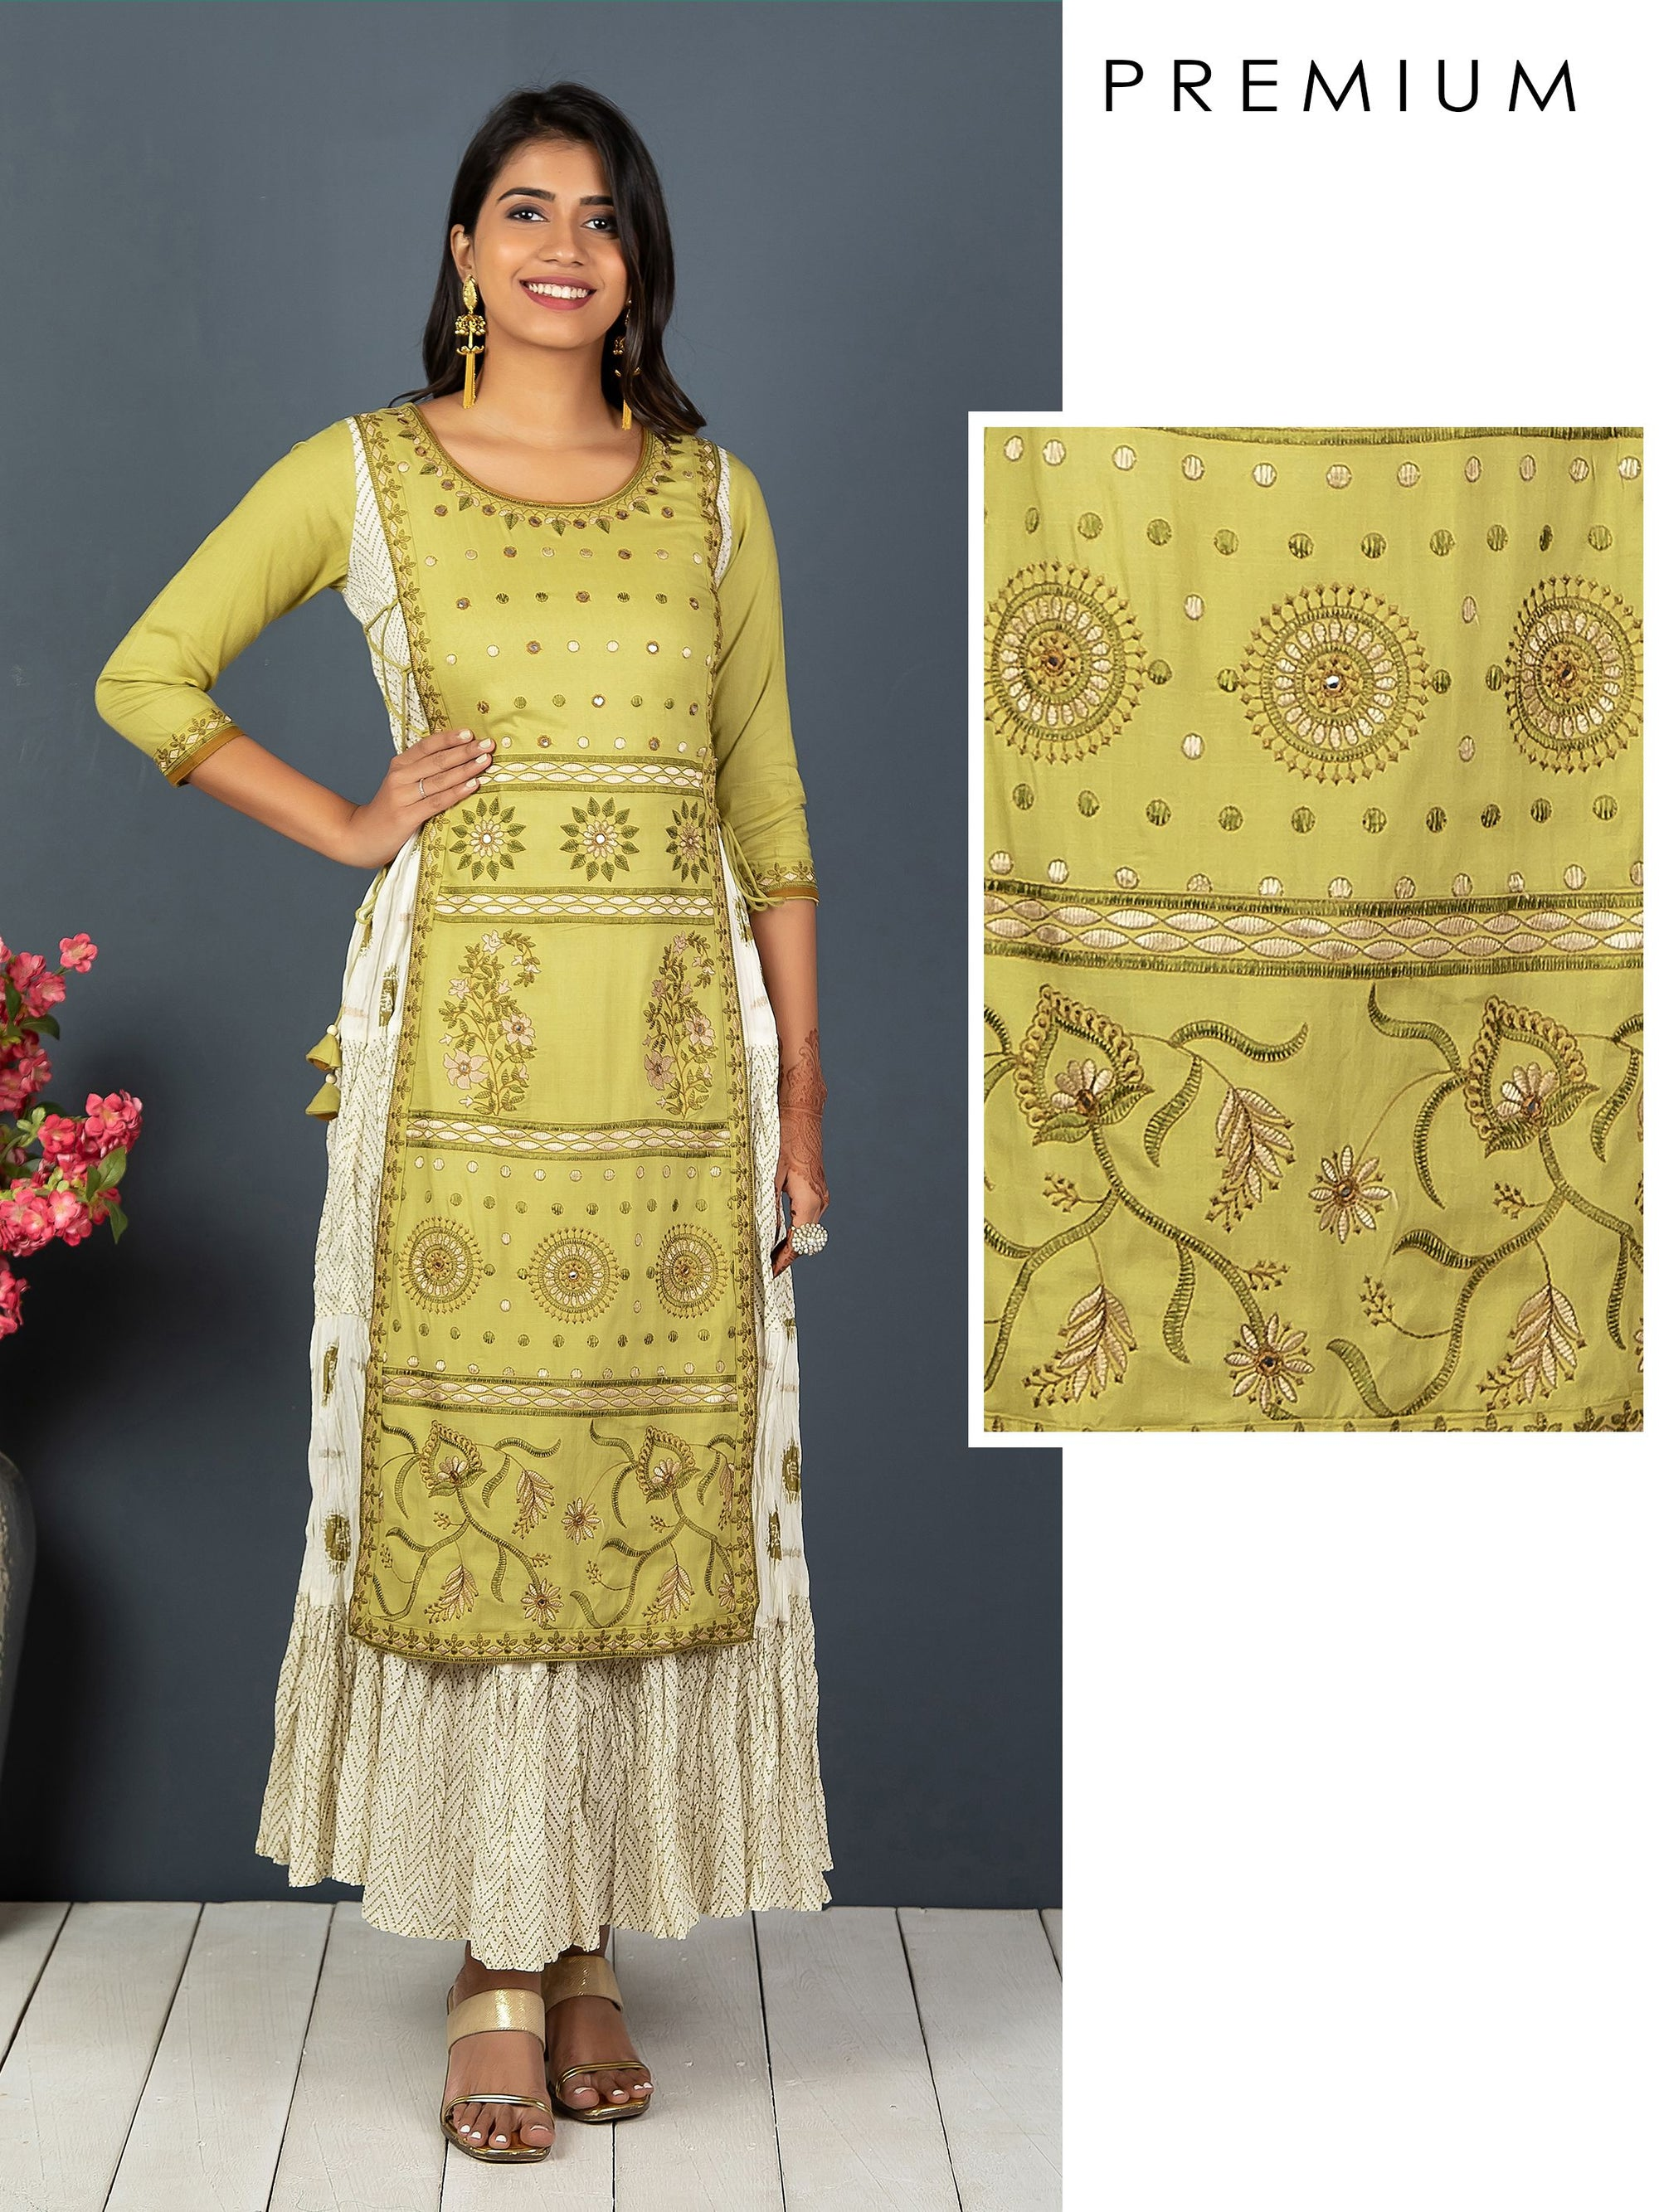 Floral Embroidery With Mirror Work And Crushed Overlay Kurta